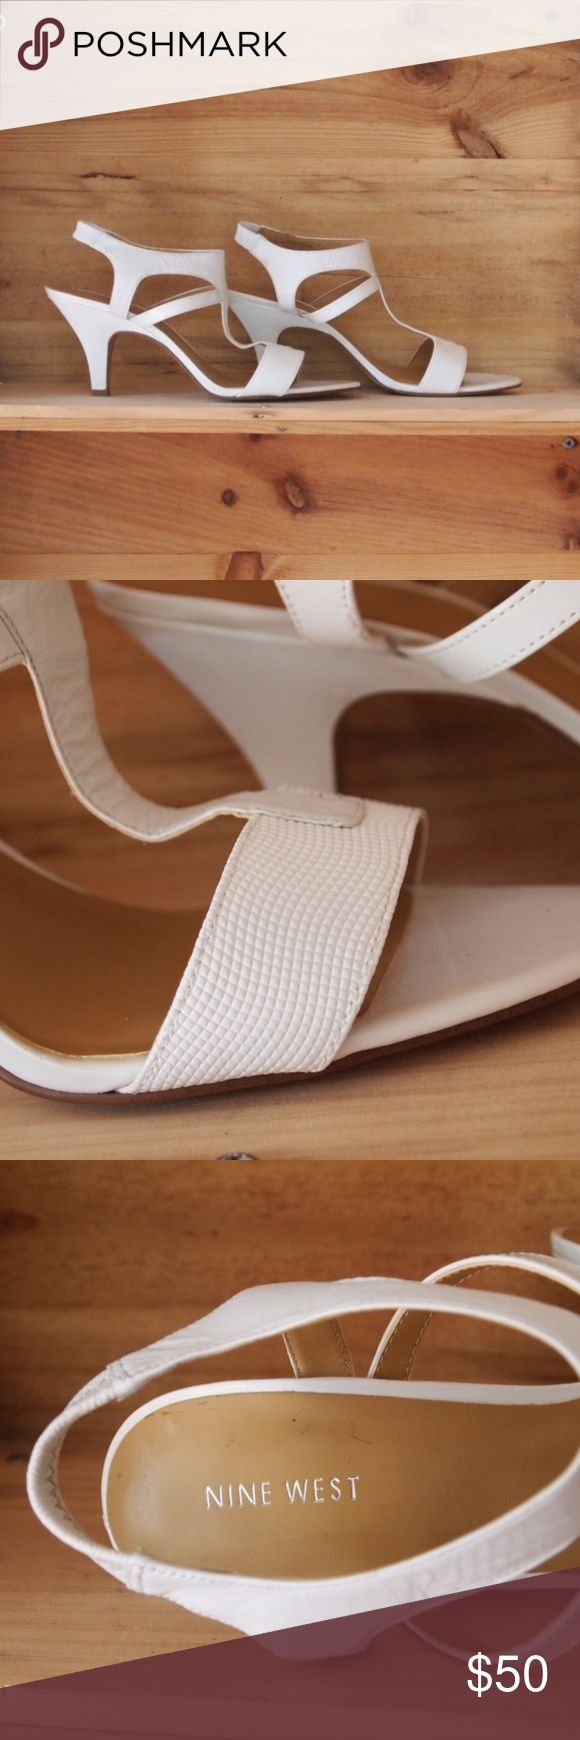 "Nine West ""Best in Show"" White textured leather strappy heels from Nine West.  New in Box, never worn. So damn cute. Nine West Shoes Heels"